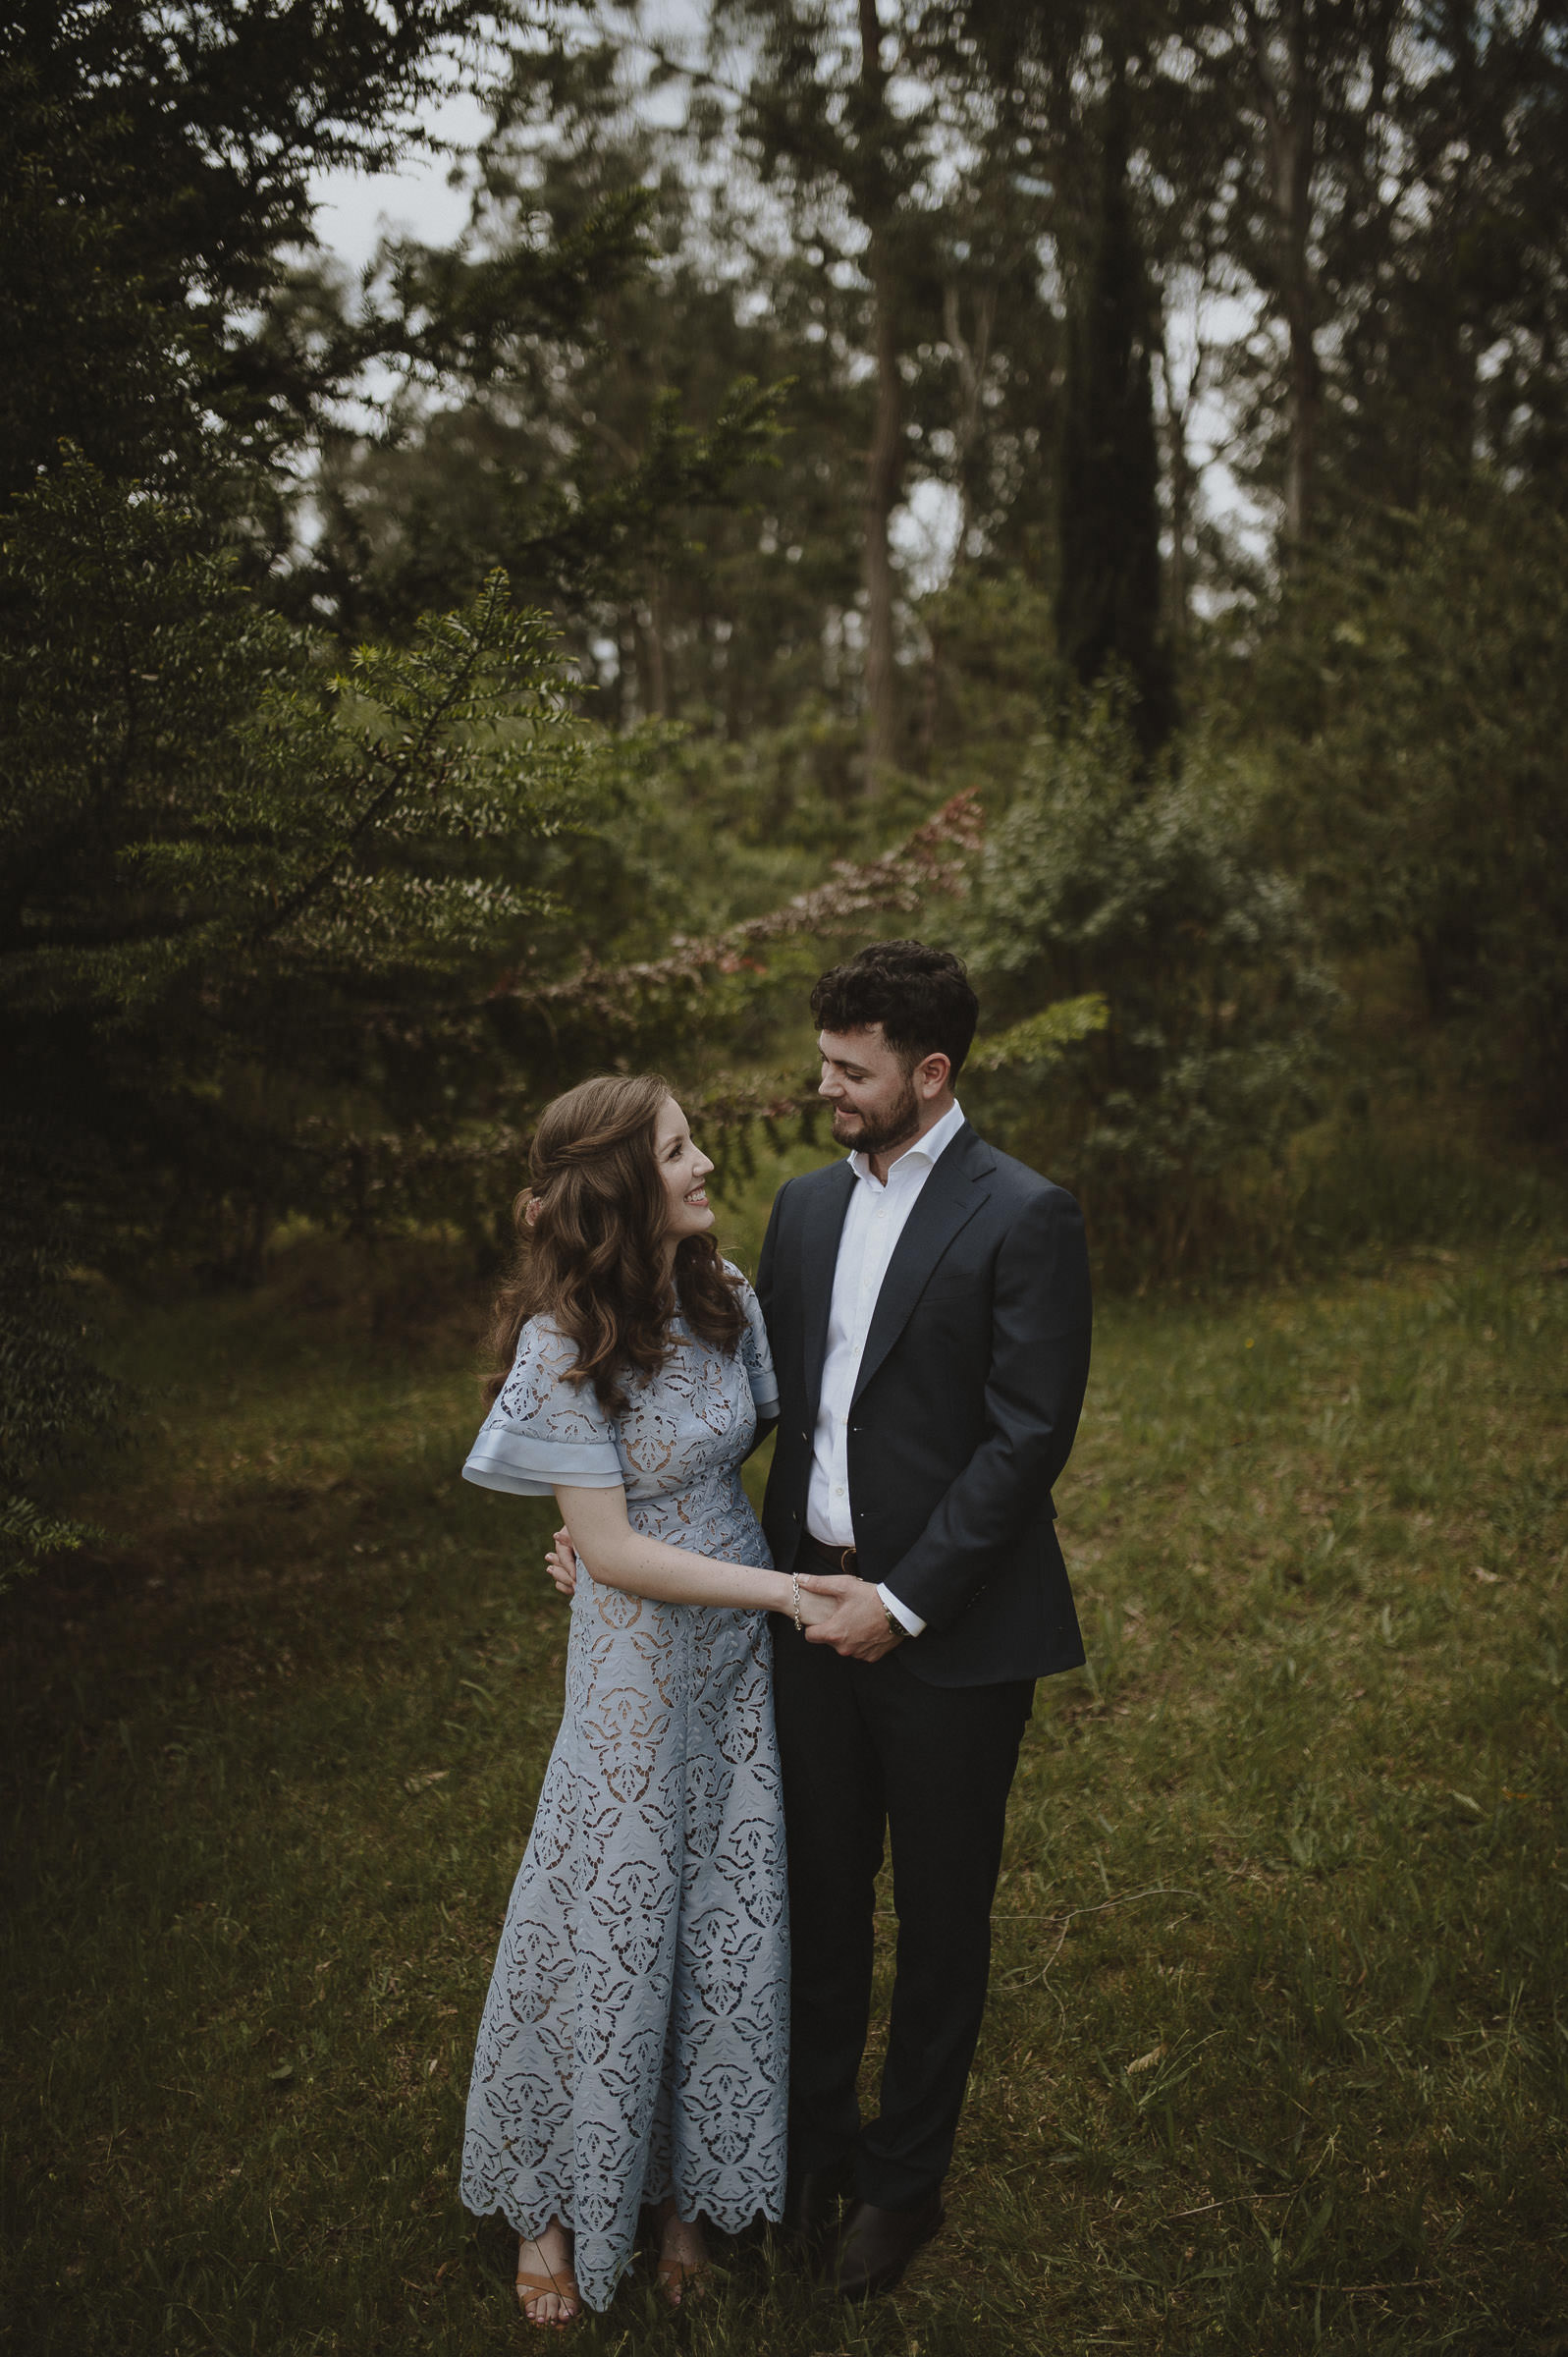 Michael_April_Bucketty_Antelopement_Blog-20.jpg